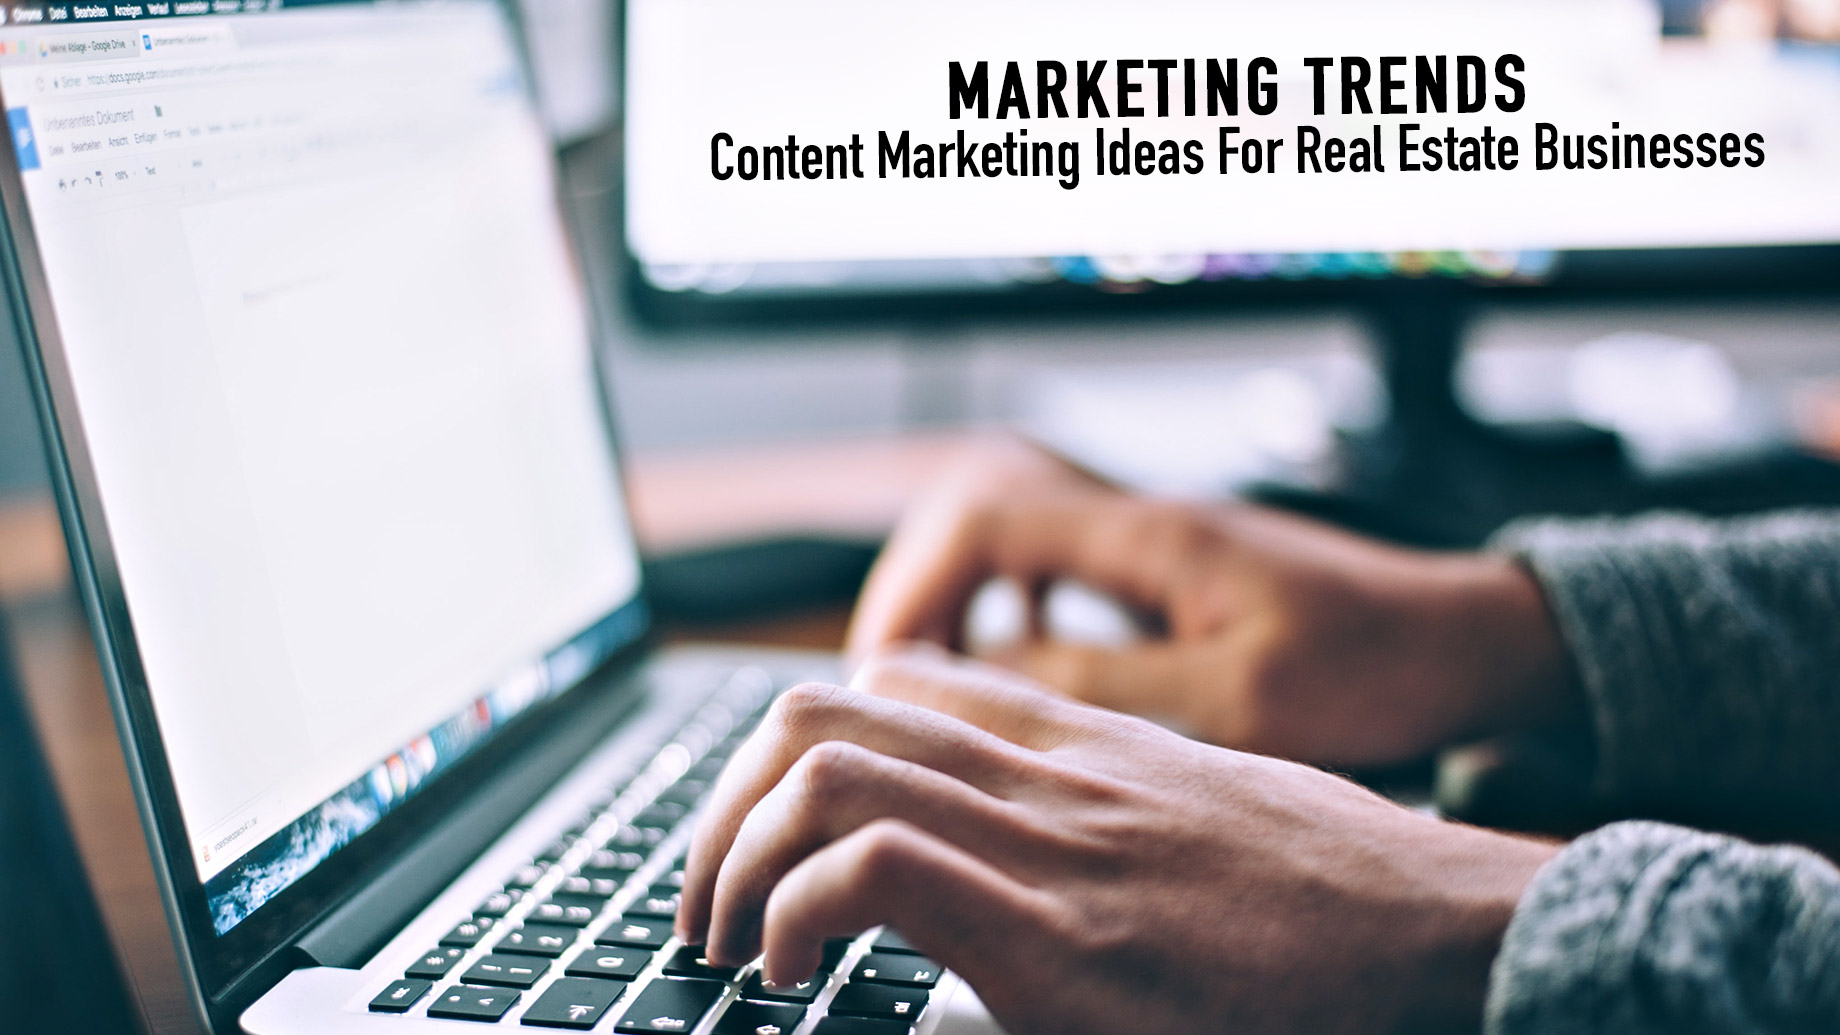 Marketing Trends - Content Marketing Ideas For Real Estate Businesses